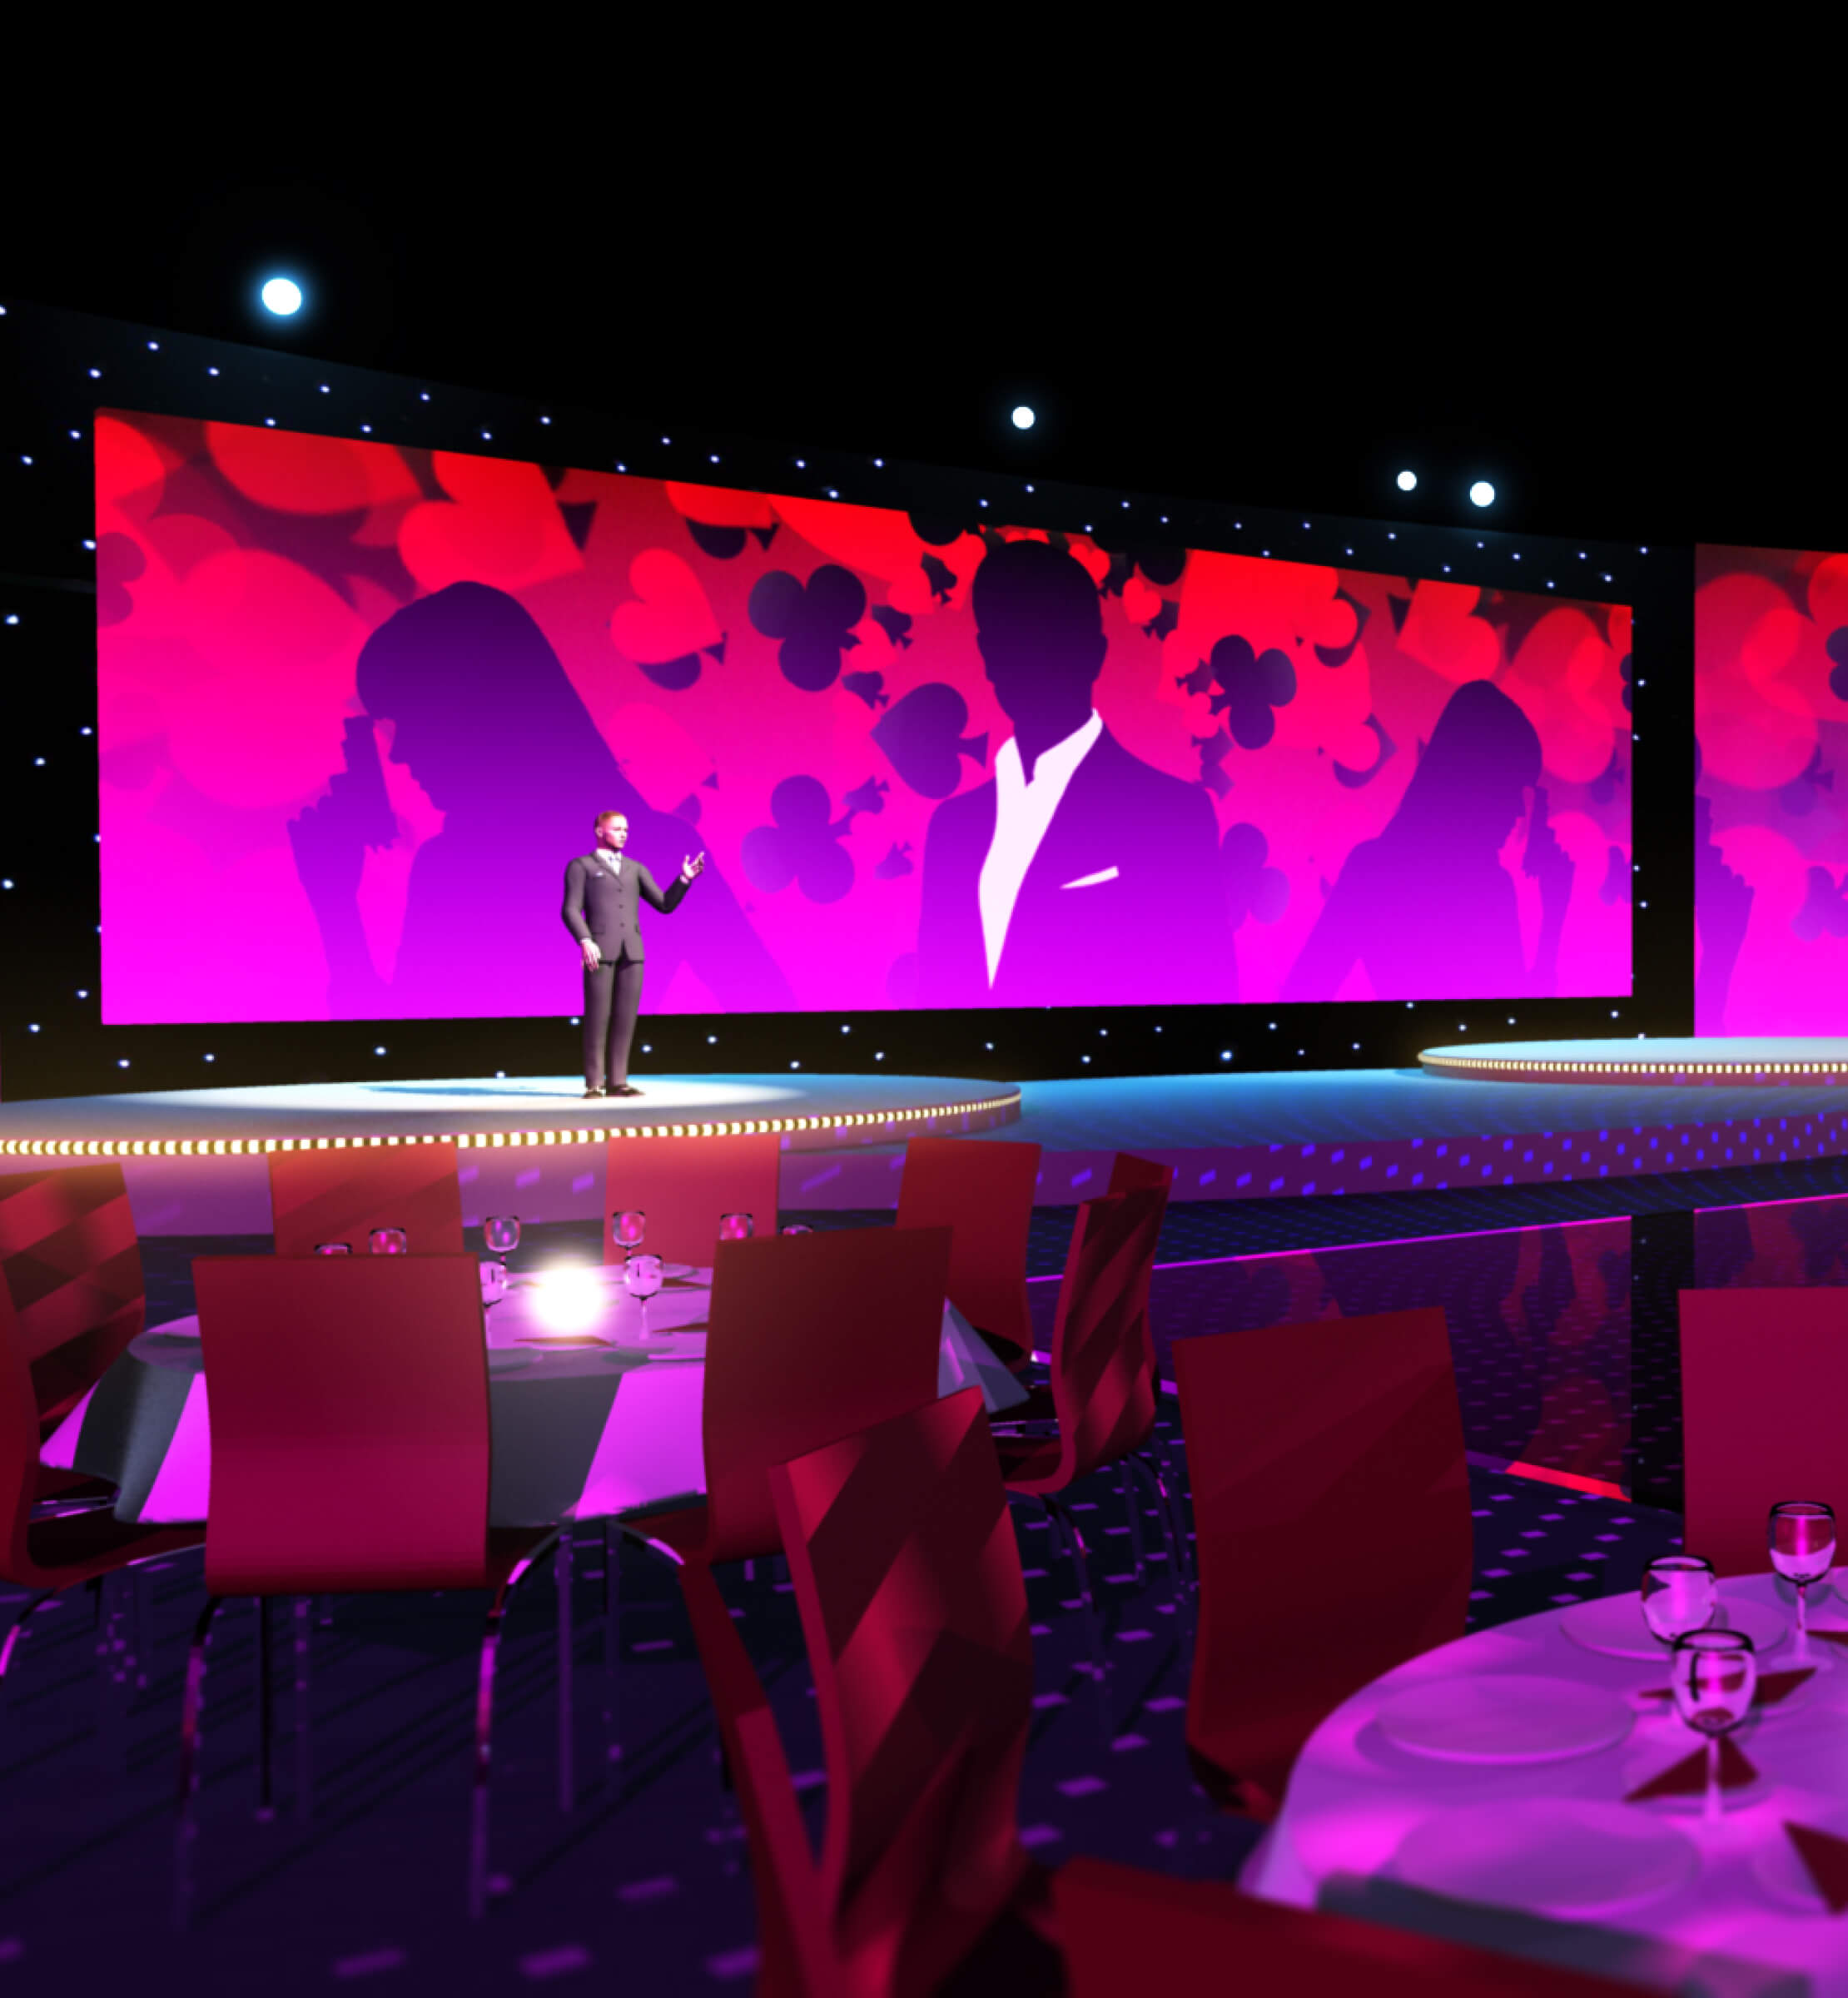 3D render of the themed animated stage backdrop and presenter on stage at the Dixons Retail Peak event